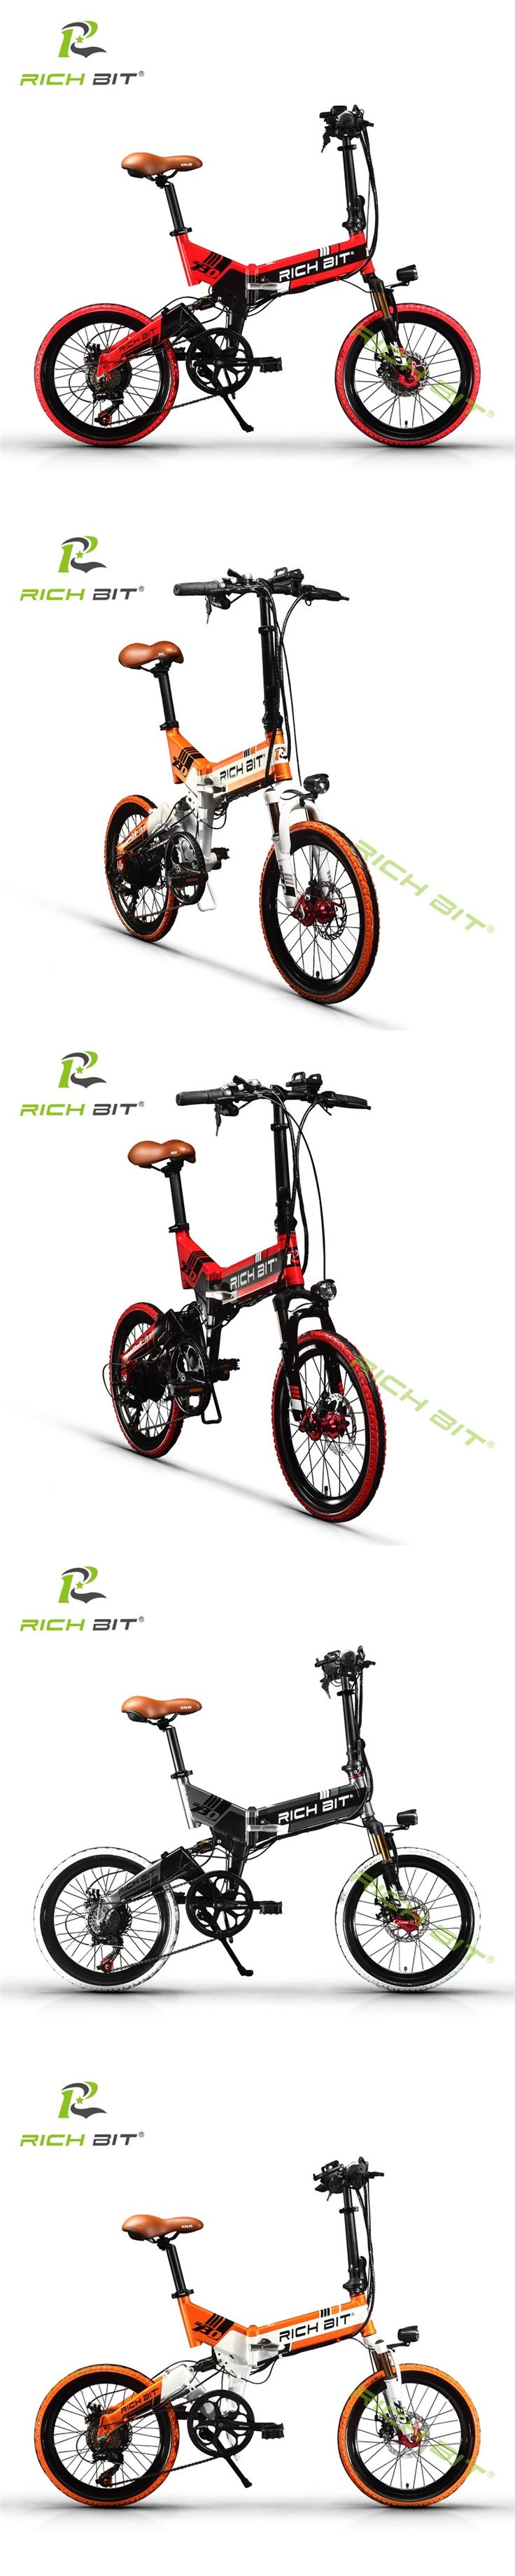 RichBit New 48V 8AH Hidden Battery Folding Electric Bike 20 inch 21 Speeds Electric Bicycle With USB Cell Phone Recharger Holder